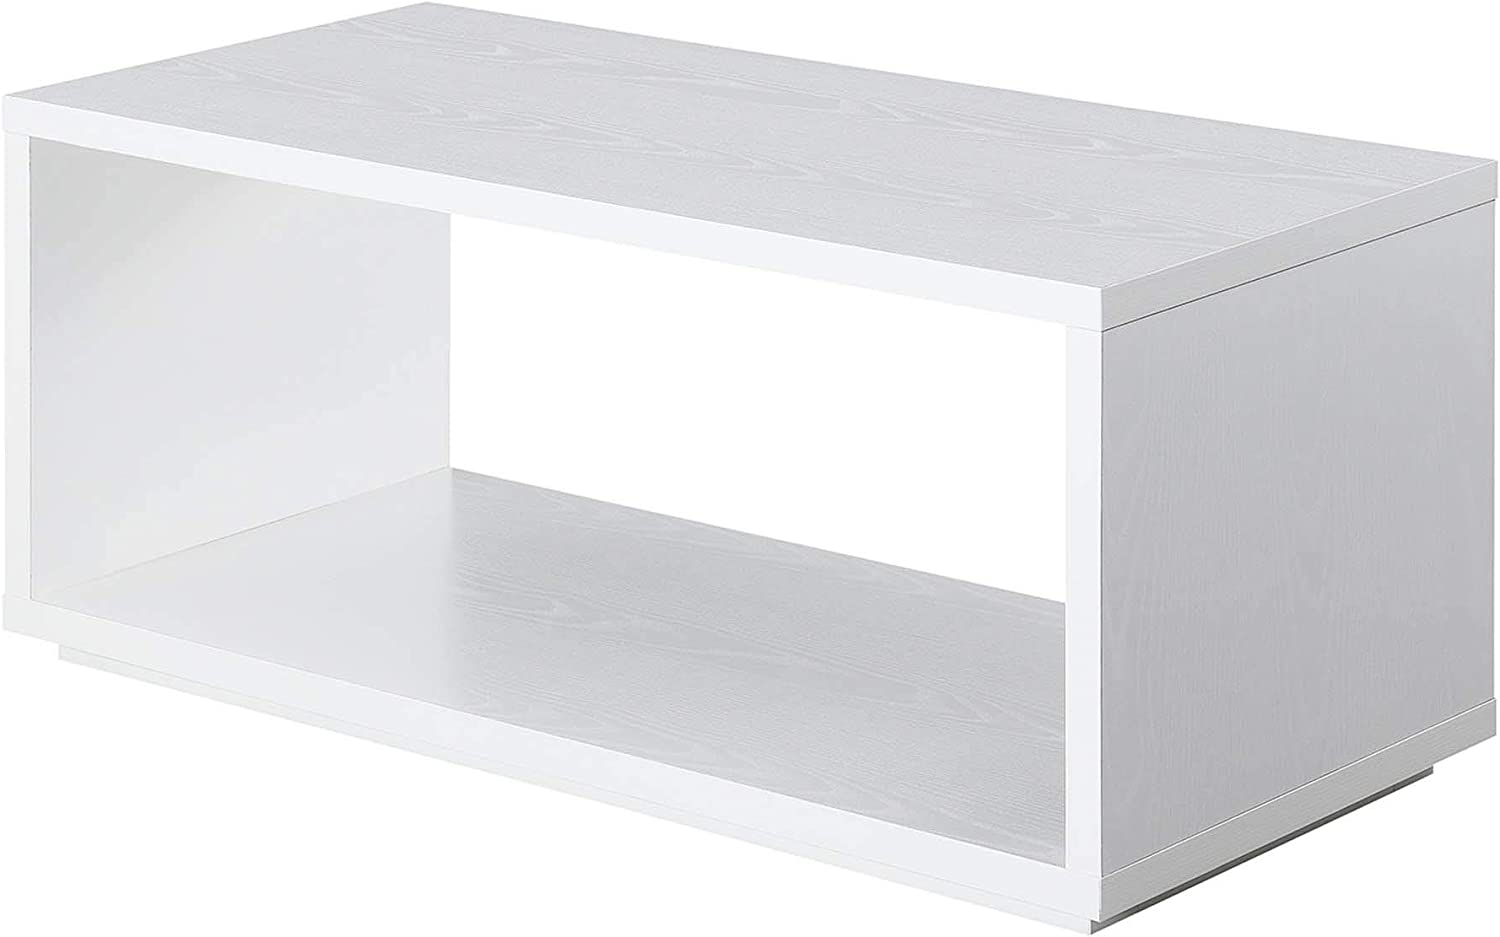 Convenience Concepts Northfield Admiral Coffee Table, White